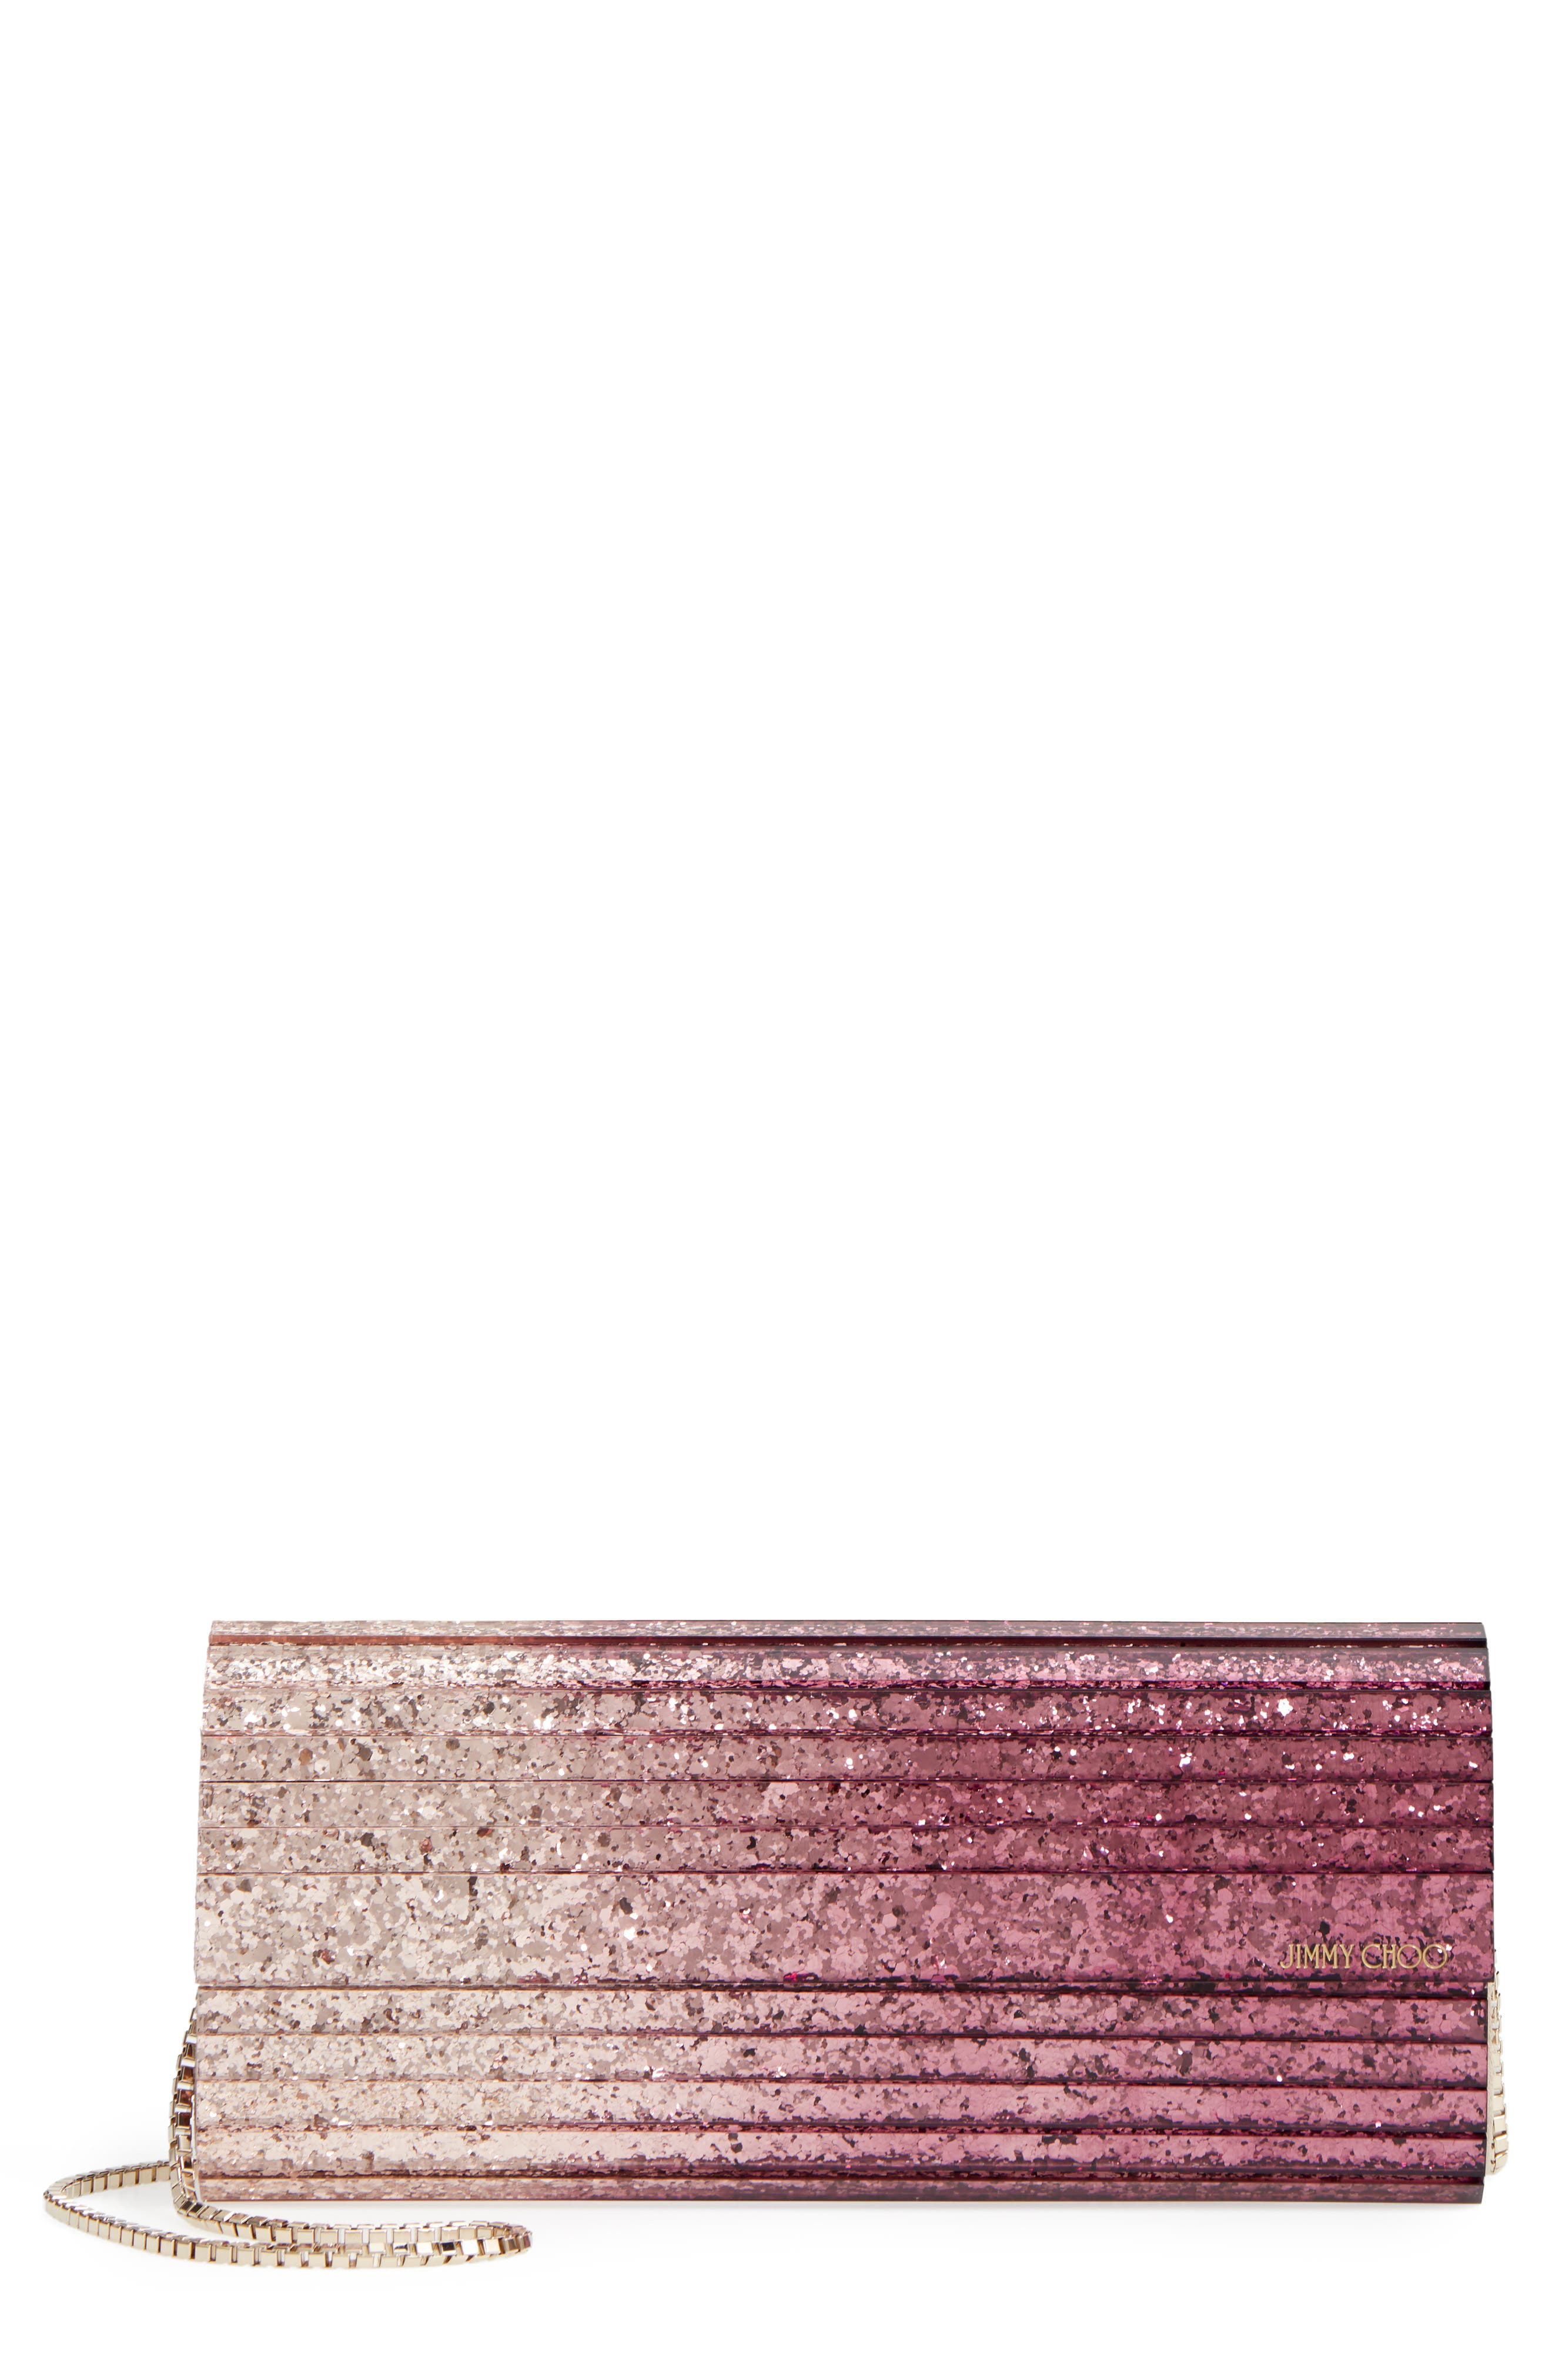 'Sweetie' Clutch,                             Main thumbnail 1, color,                             Champagne/ Grape